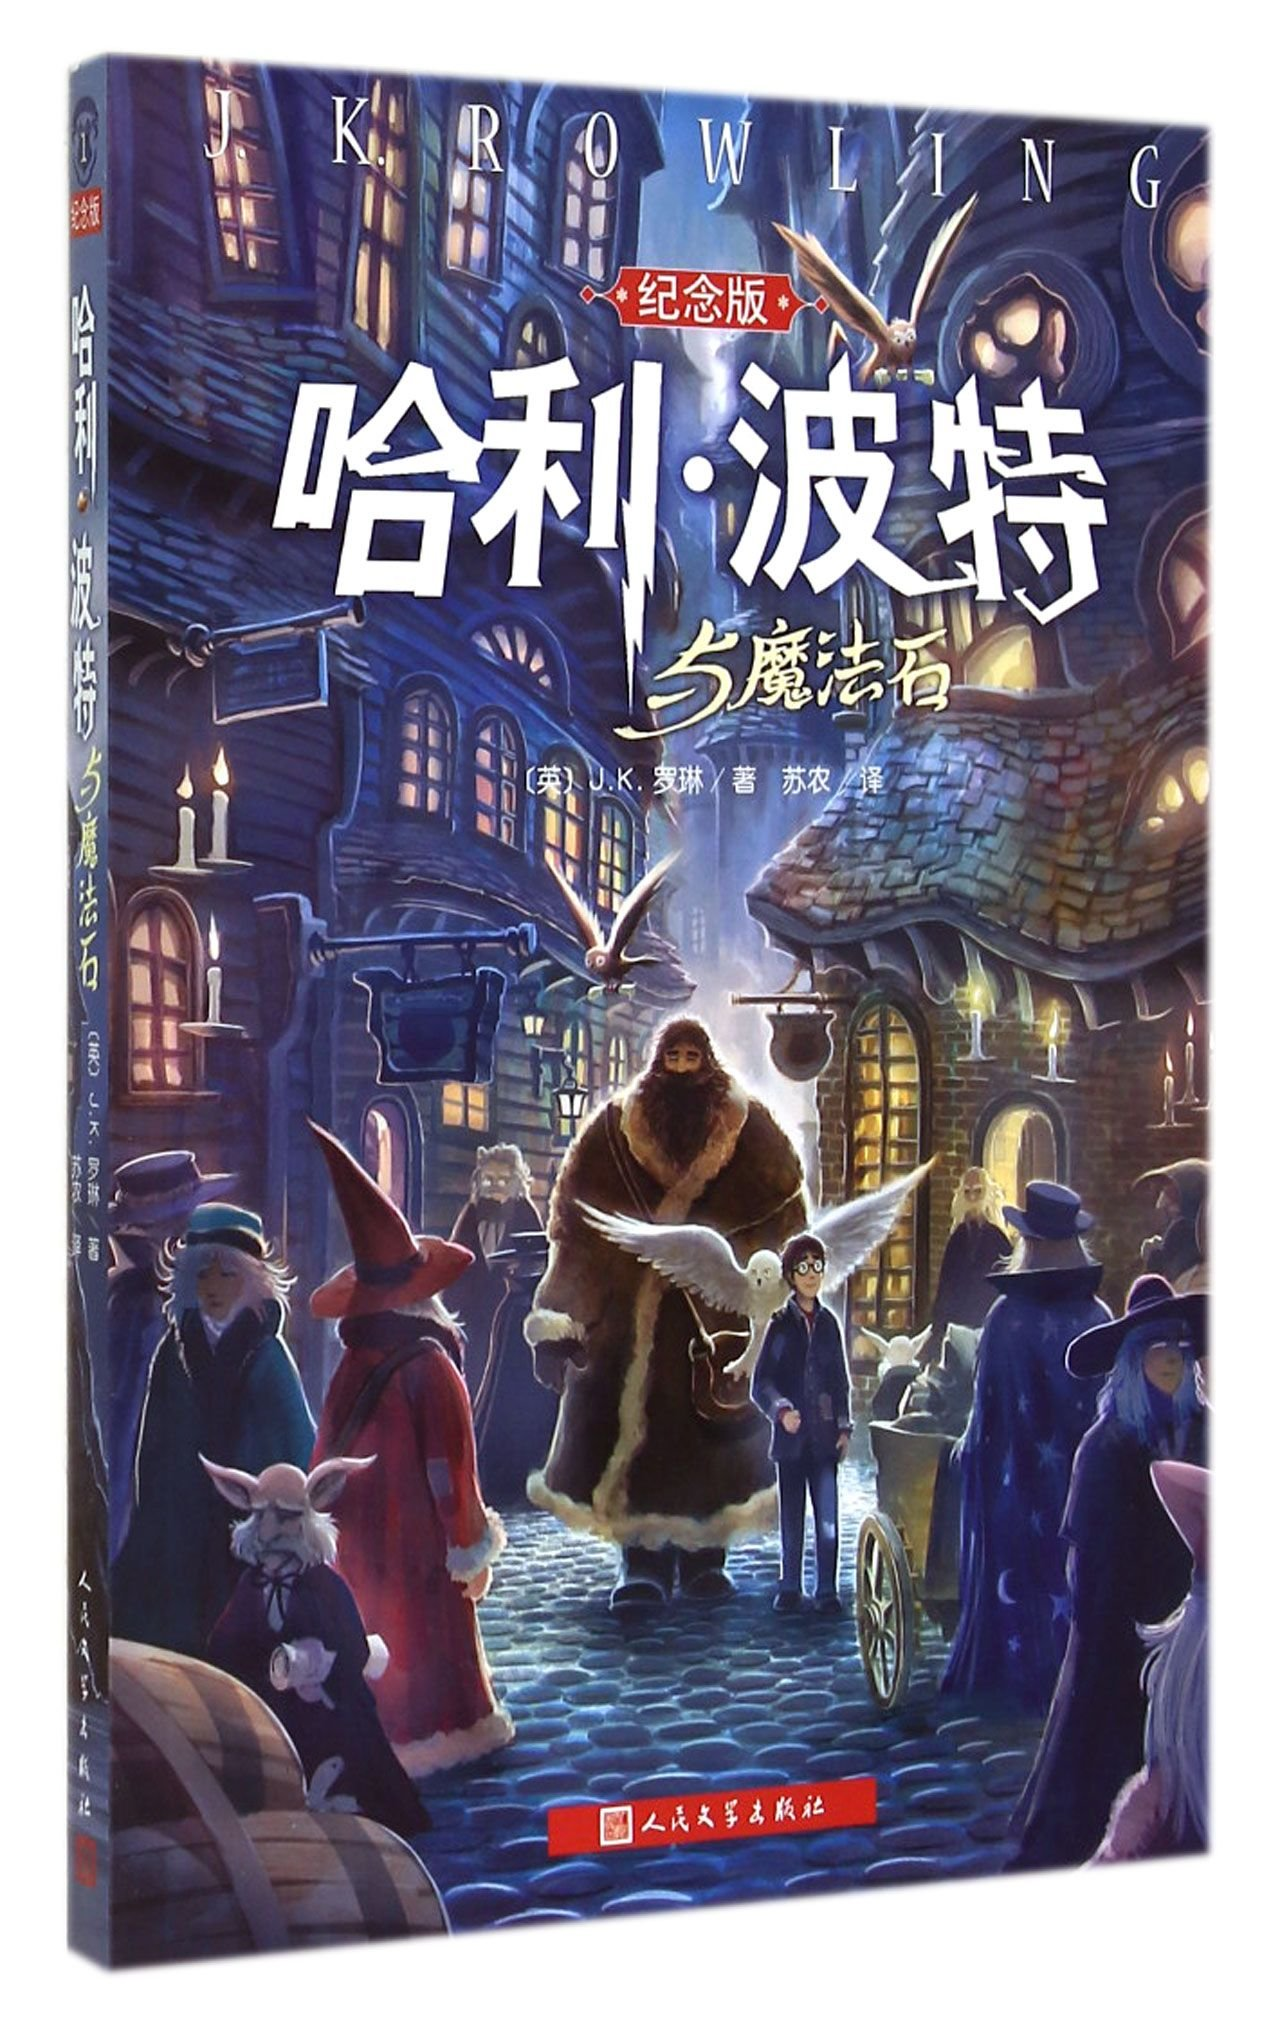 Harry Potter and the Philosopher's Stone [simplified Chinese] [15th anniversary collector's edition]